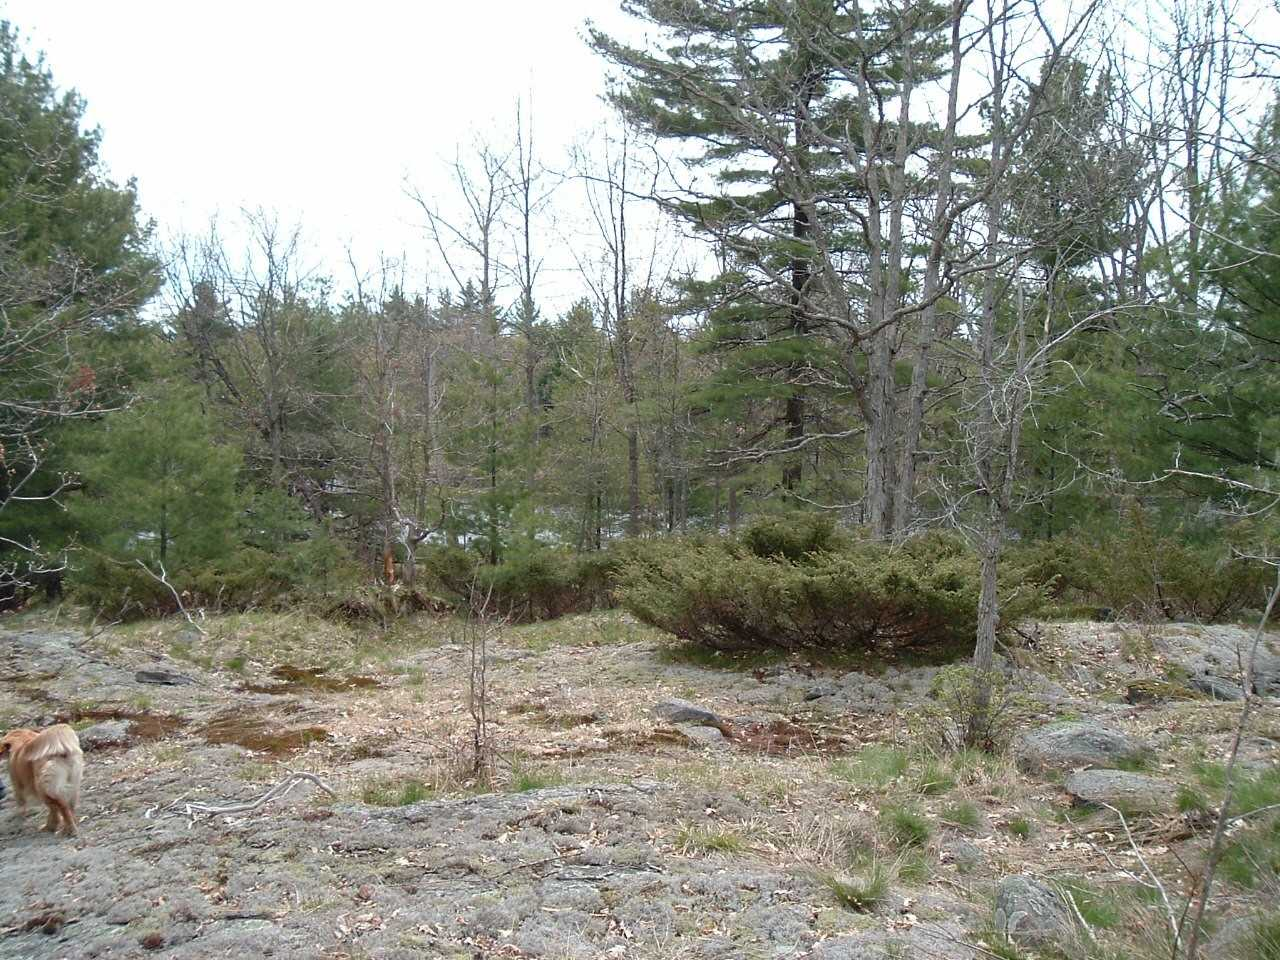 Lots Of Privacy Here On 59 Acre Parcel With A Right Of Way From Muskoka Rd 5 (Honey Harbour Rd) To The Acreage. Barrie, Orillia, Parry Sound 45 Minutes, Midland 30 Minutes, Mount St Louis Ski Hills 20 Minutes, Lots Of Marinas Very Close For Georgian Bay, Trent-Severn Waterway, Six Mile Lake. Development Fees Will Apply If /When A Building Permit Is Applied For.